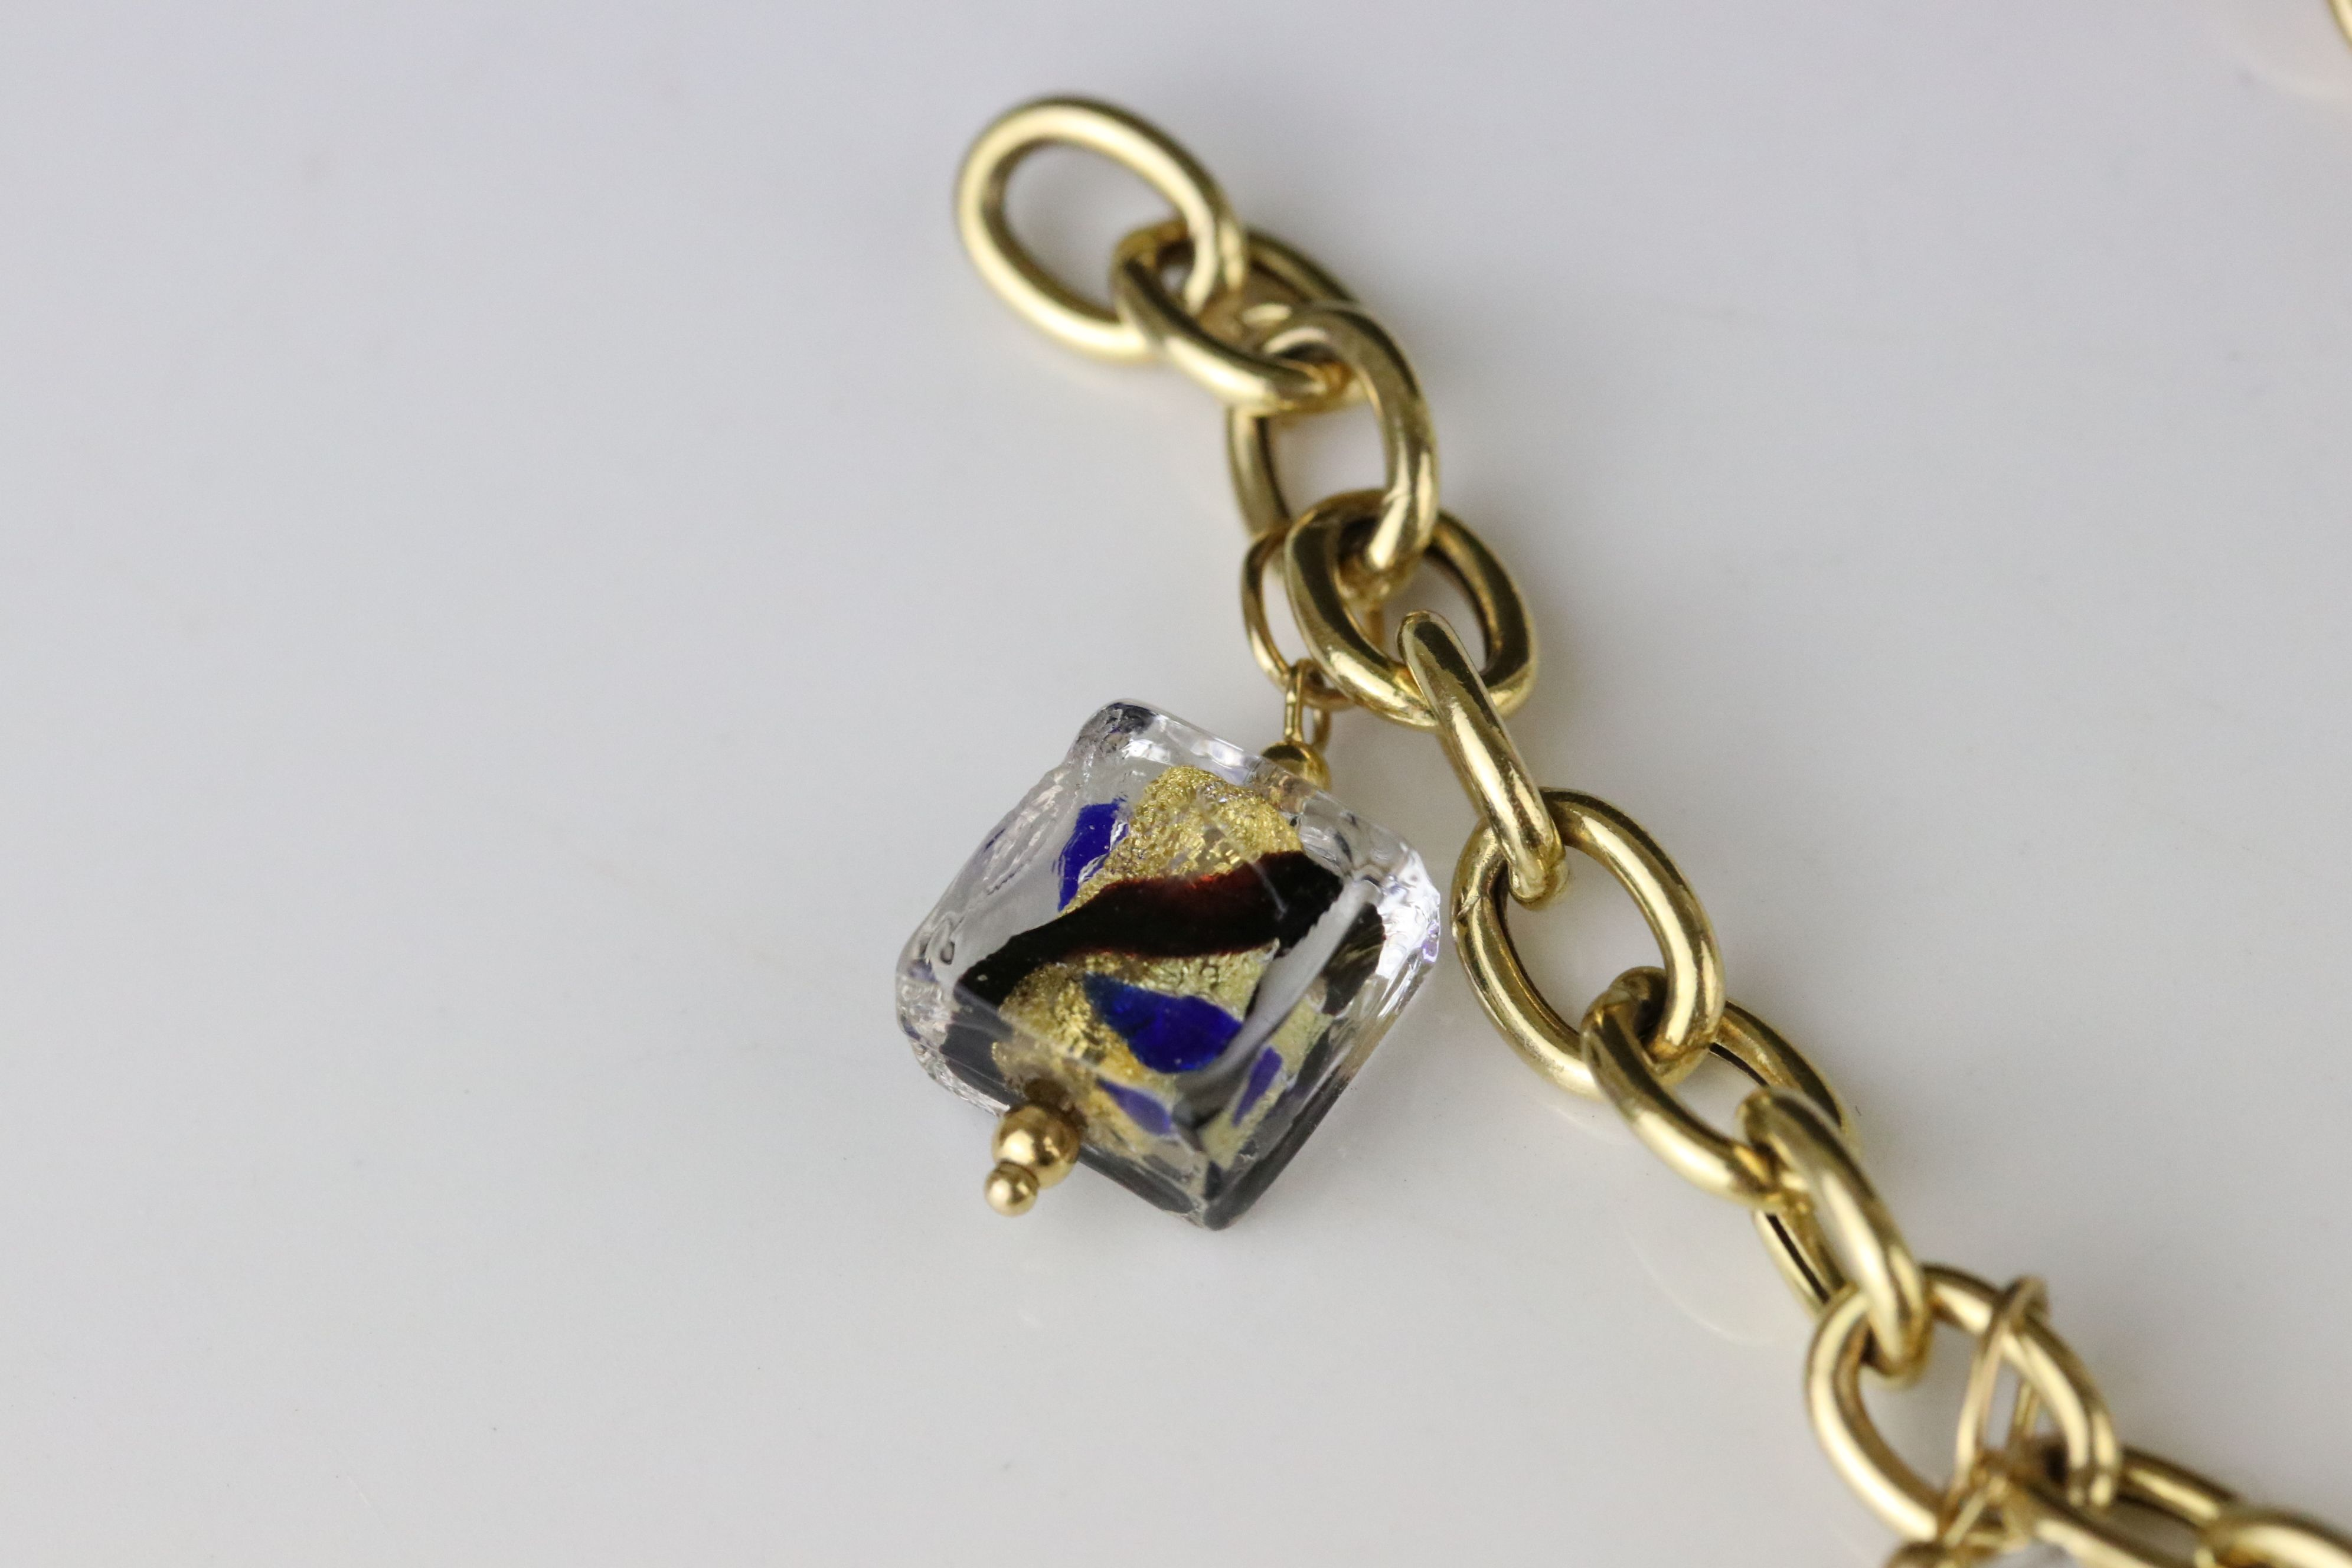 14ct yellow gold charm bracelet with five Murano style glass charms, lobster clasp, length approx - Image 3 of 5